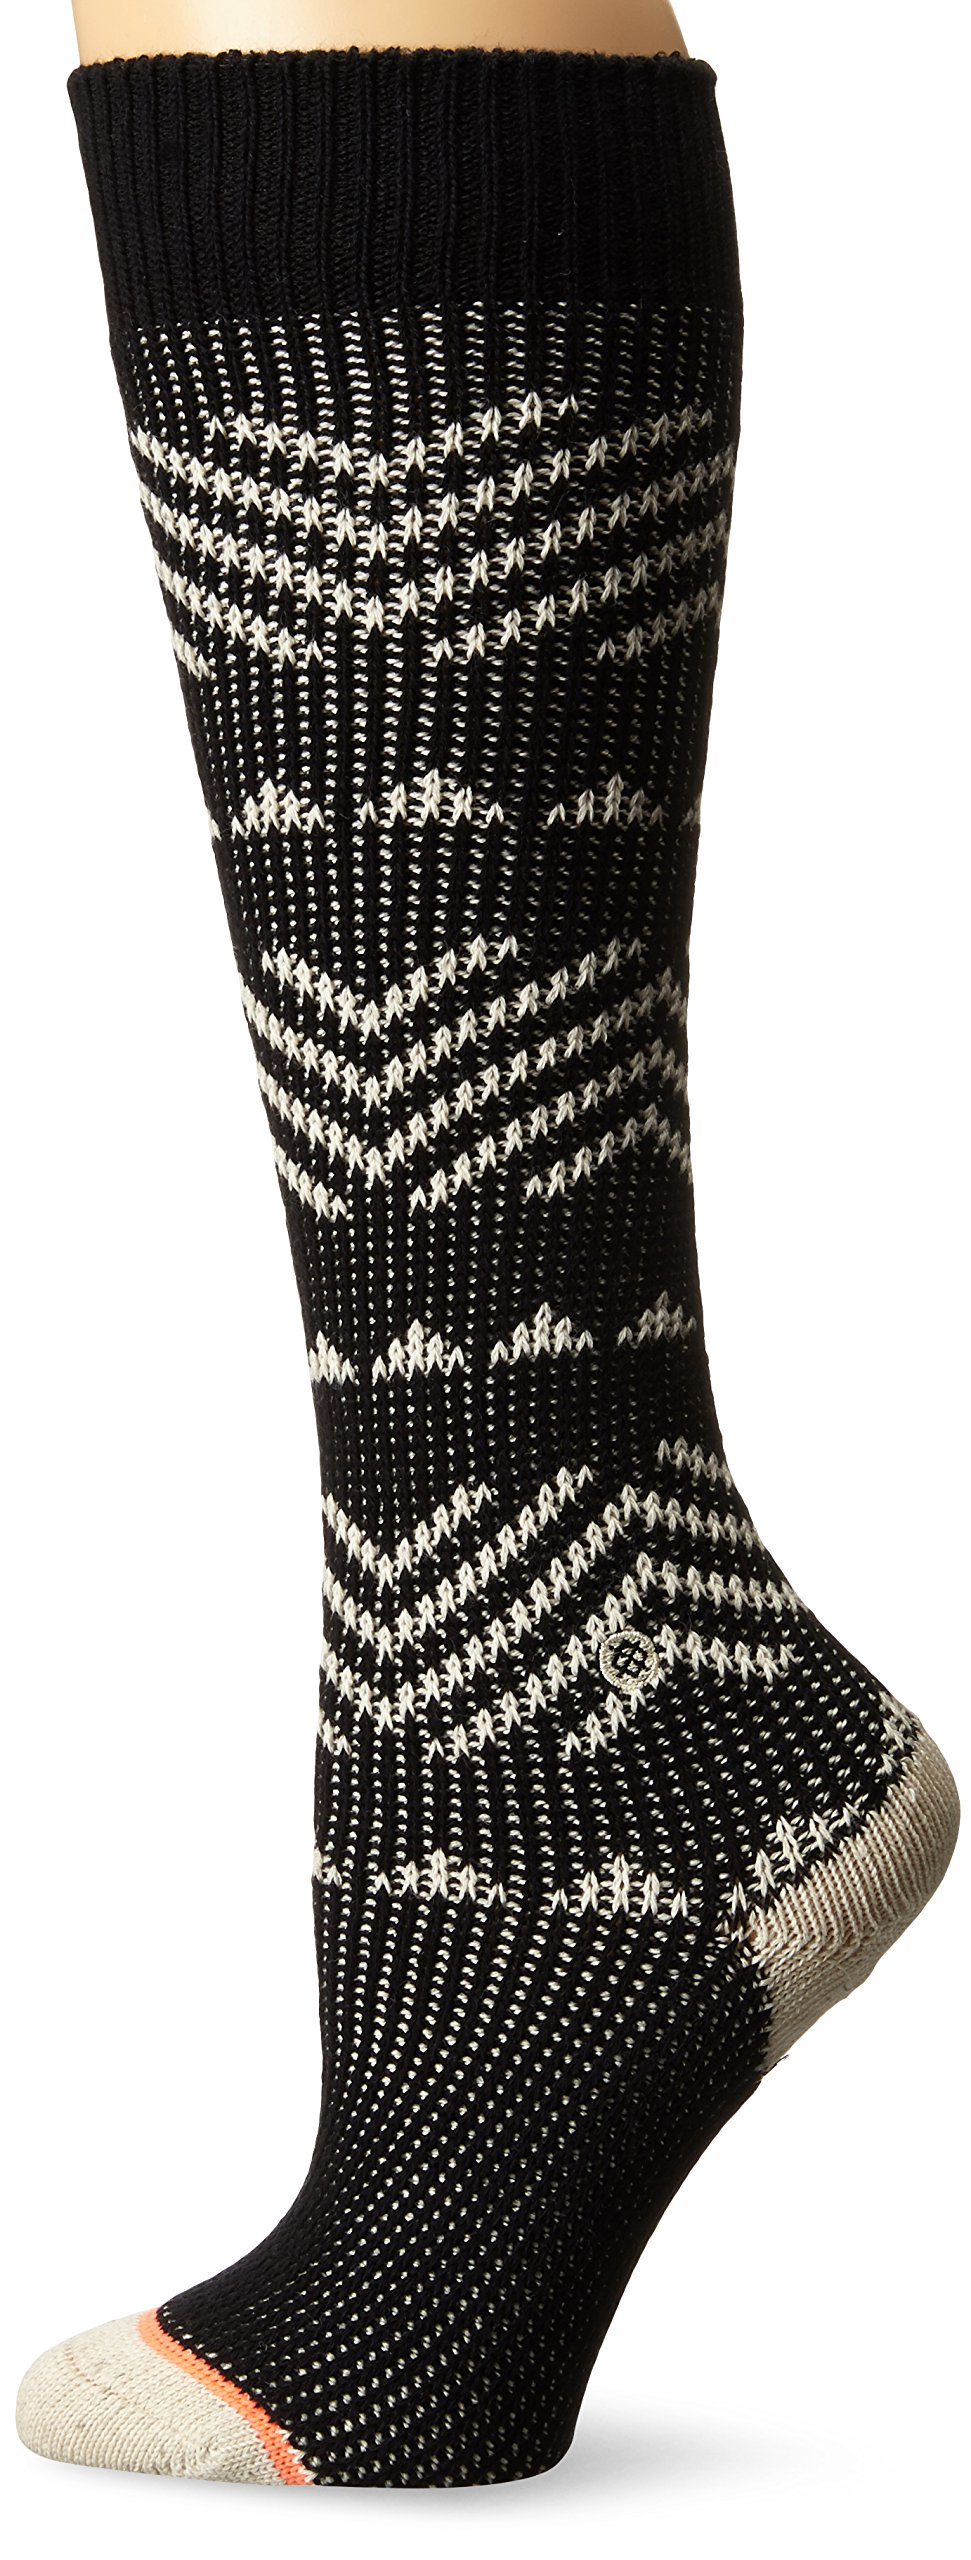 Stance Women's Del Valle Tall Boot Sock, Black, Small